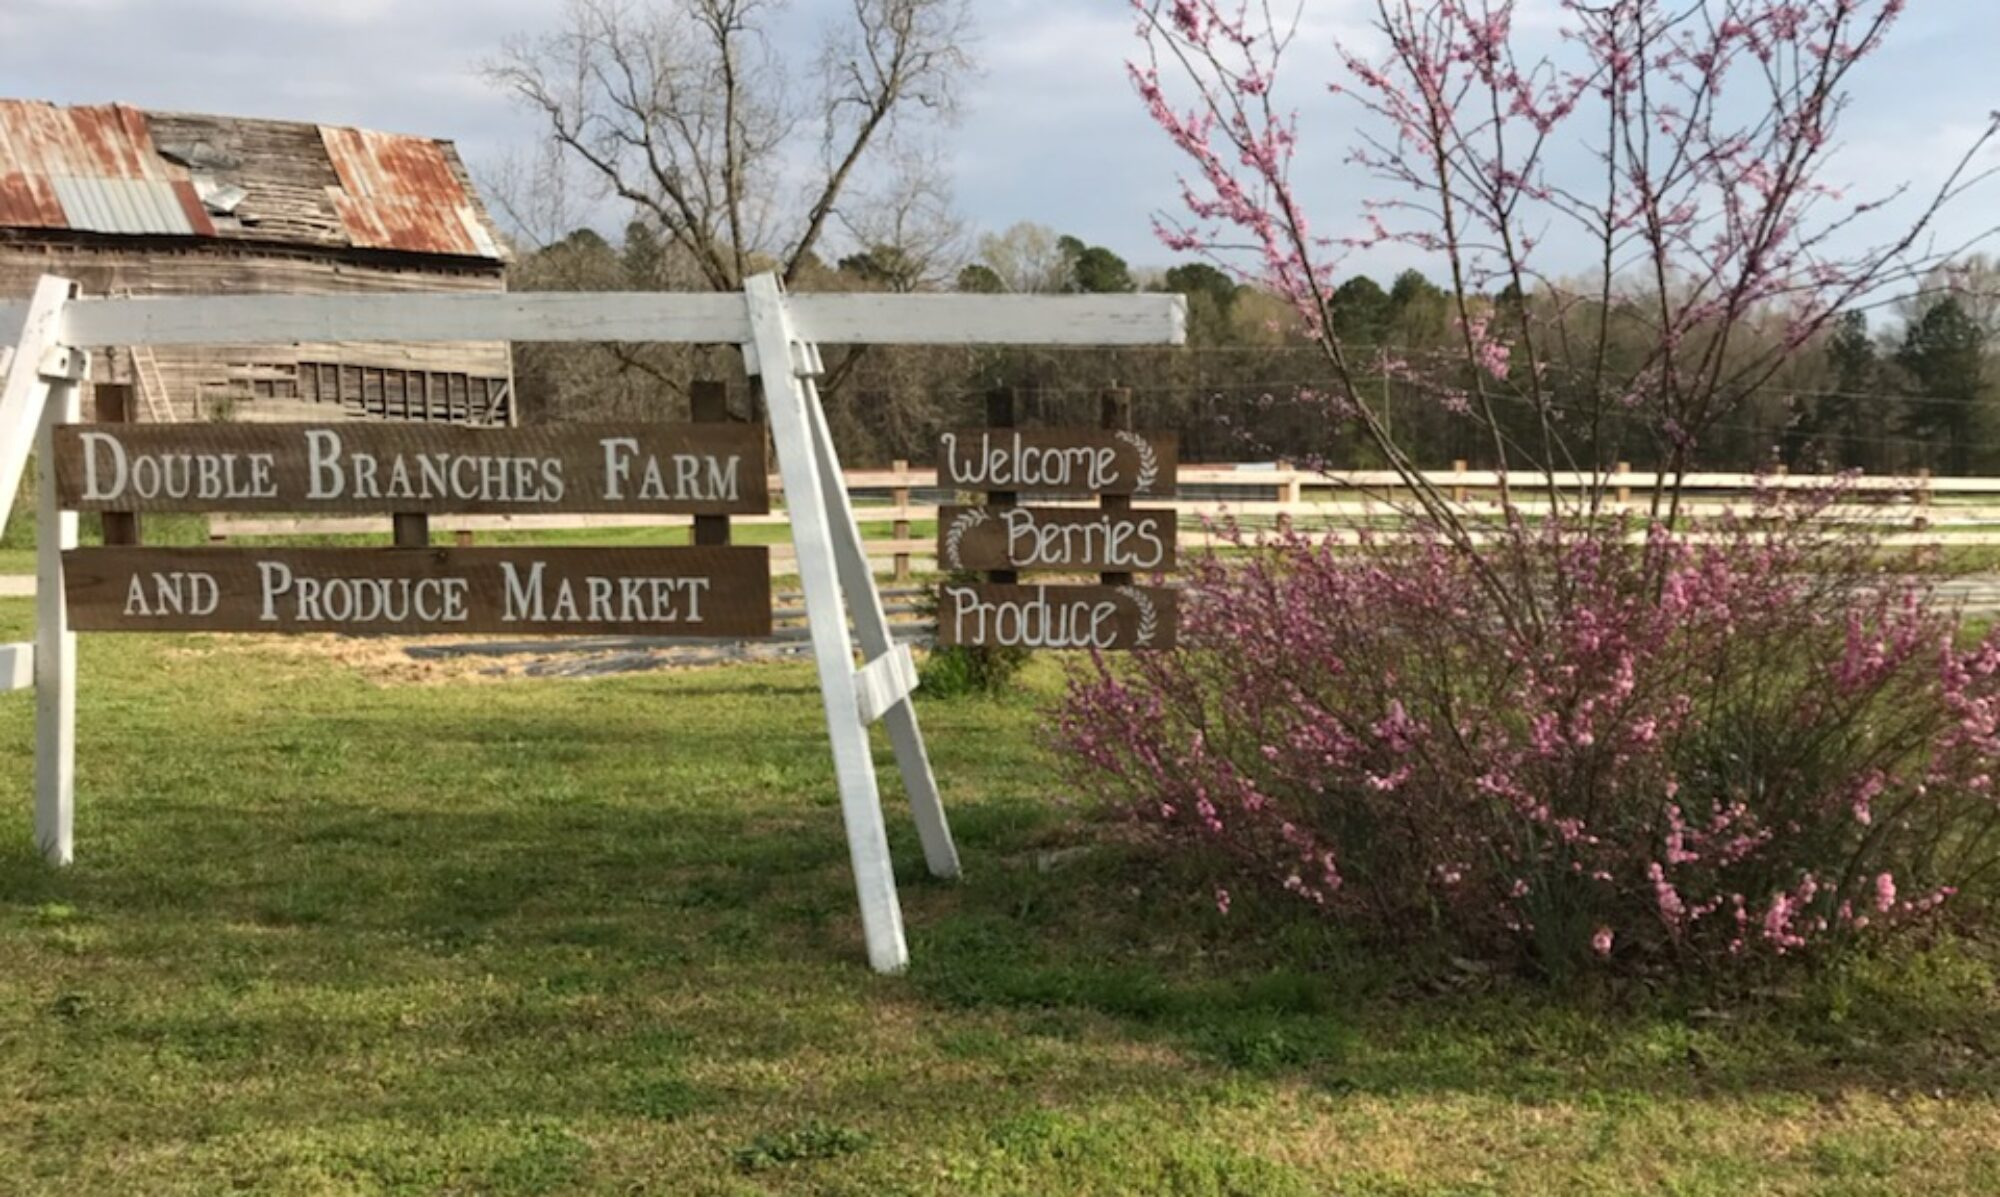 Double Branches Farm and Produce Market